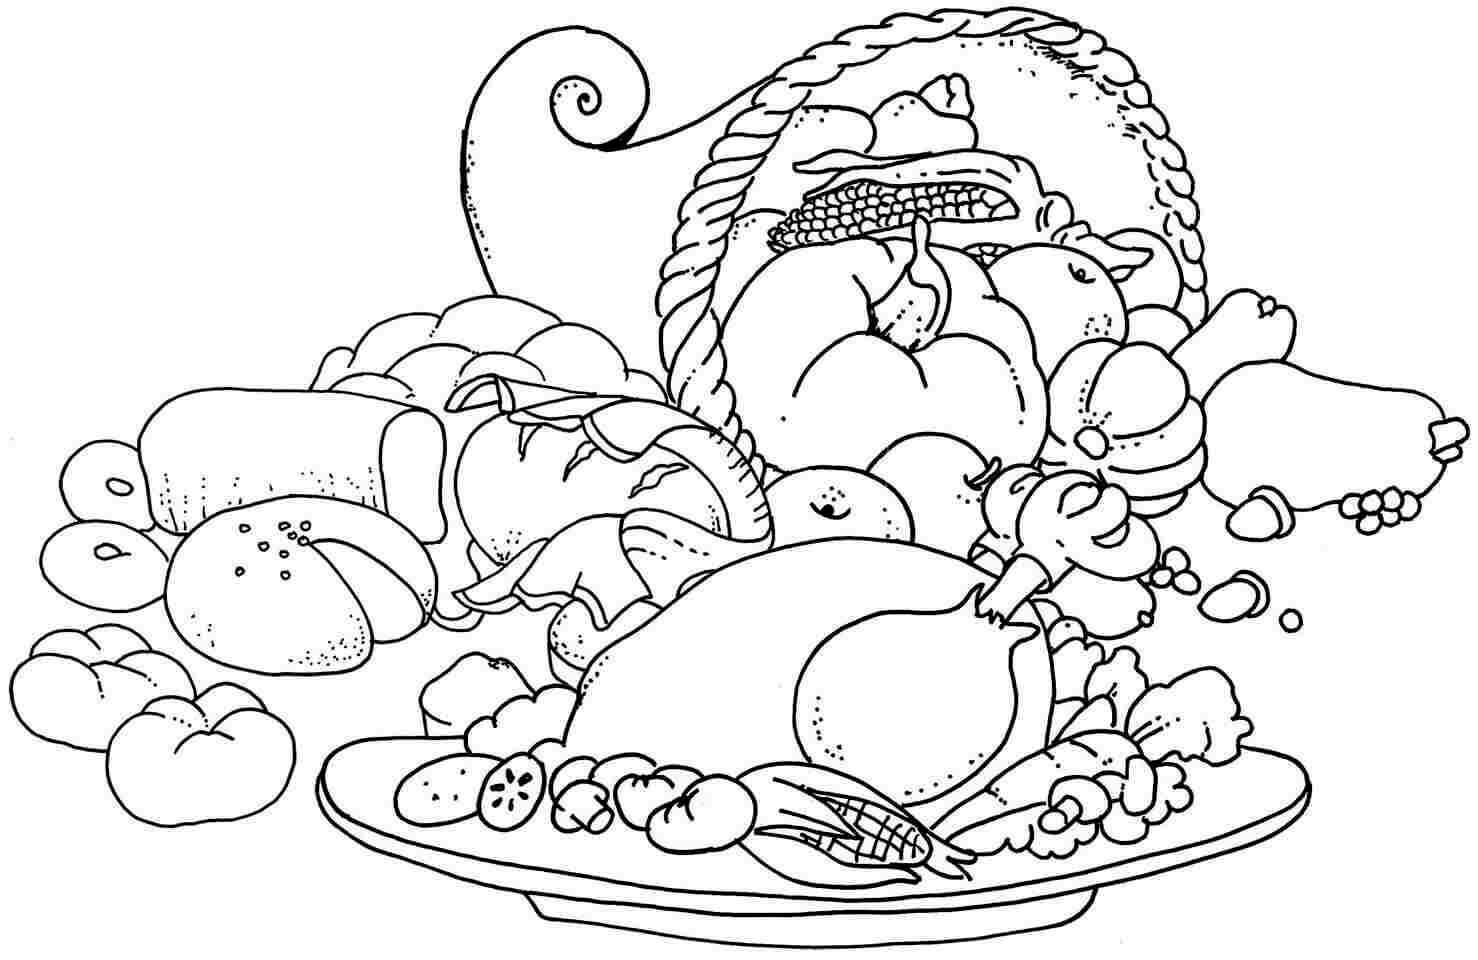 snack coloring pages get this cute food coloring pages 73bbd snack coloring pages